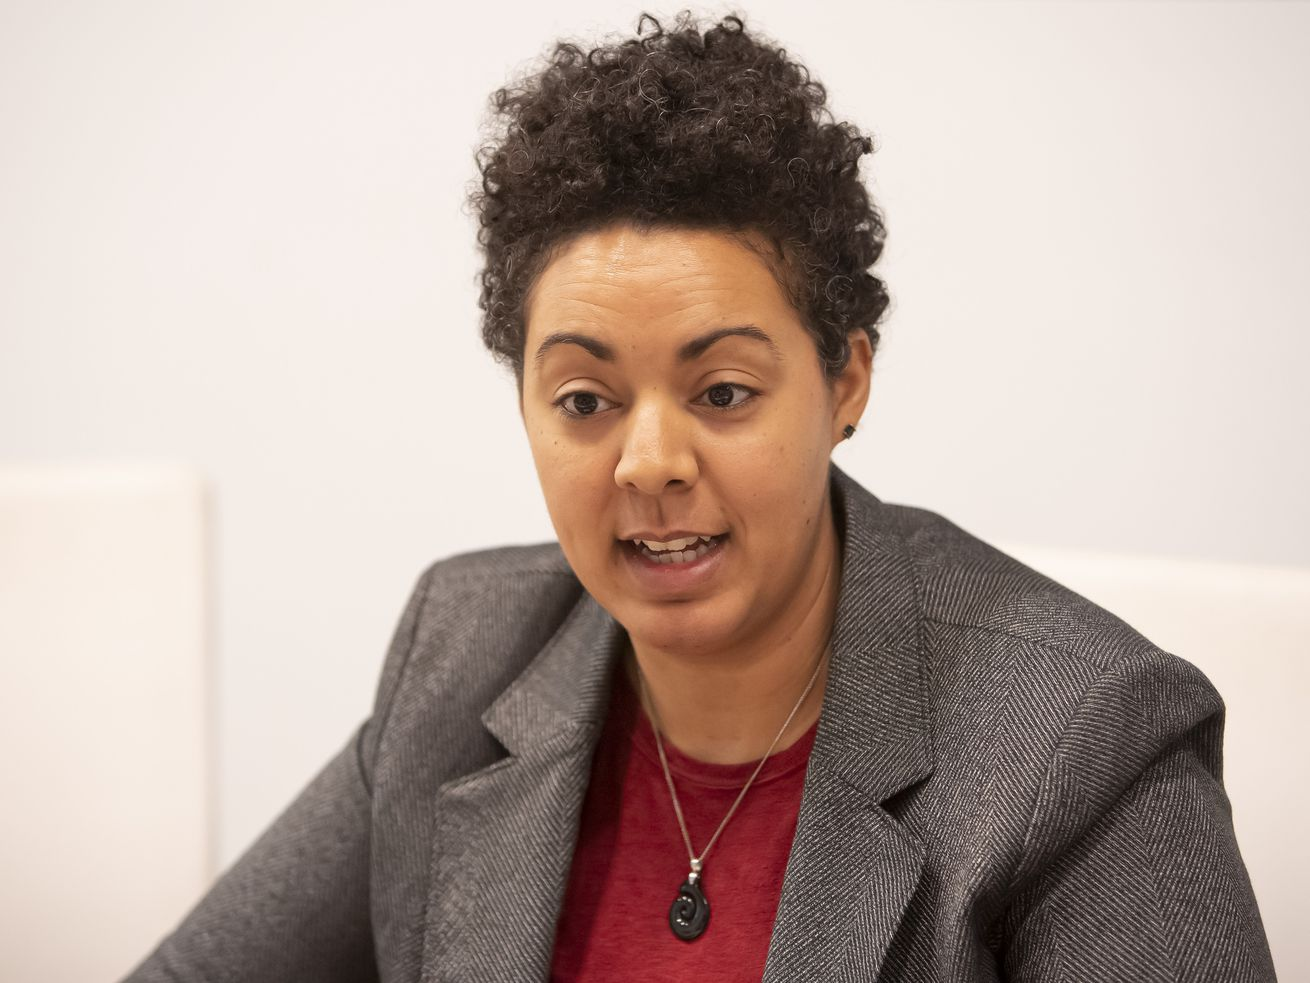 49th Ward aldermanic candidate Maria Hadden met with the Sun-Times Editorial Board Monday, January 14, 2019.